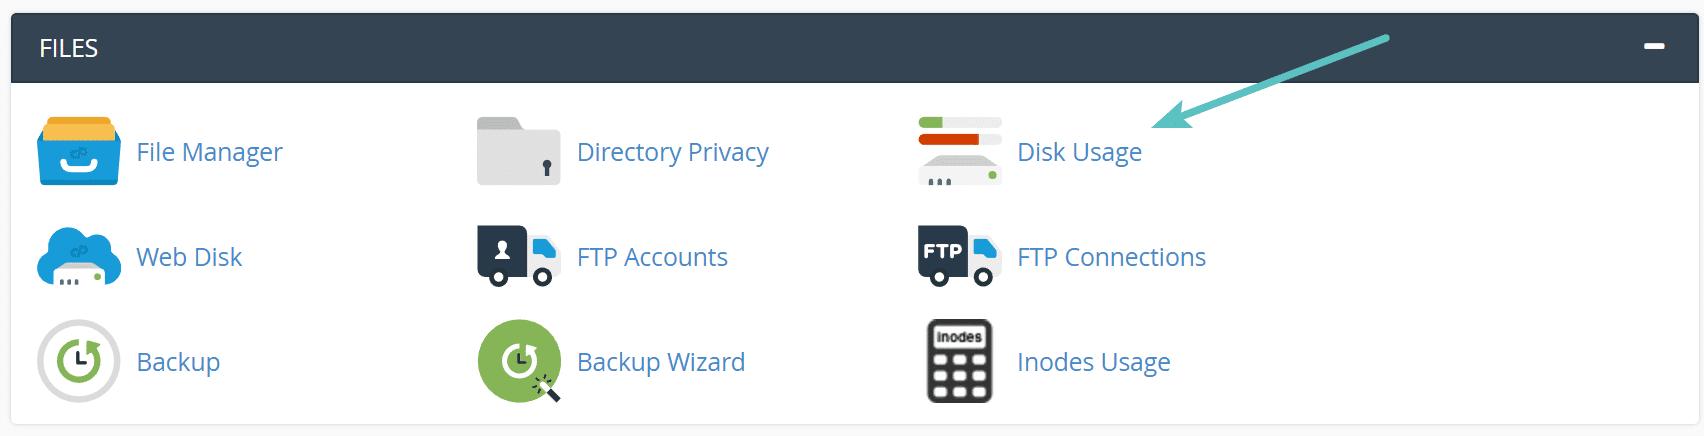 Uso do disco no cPanel